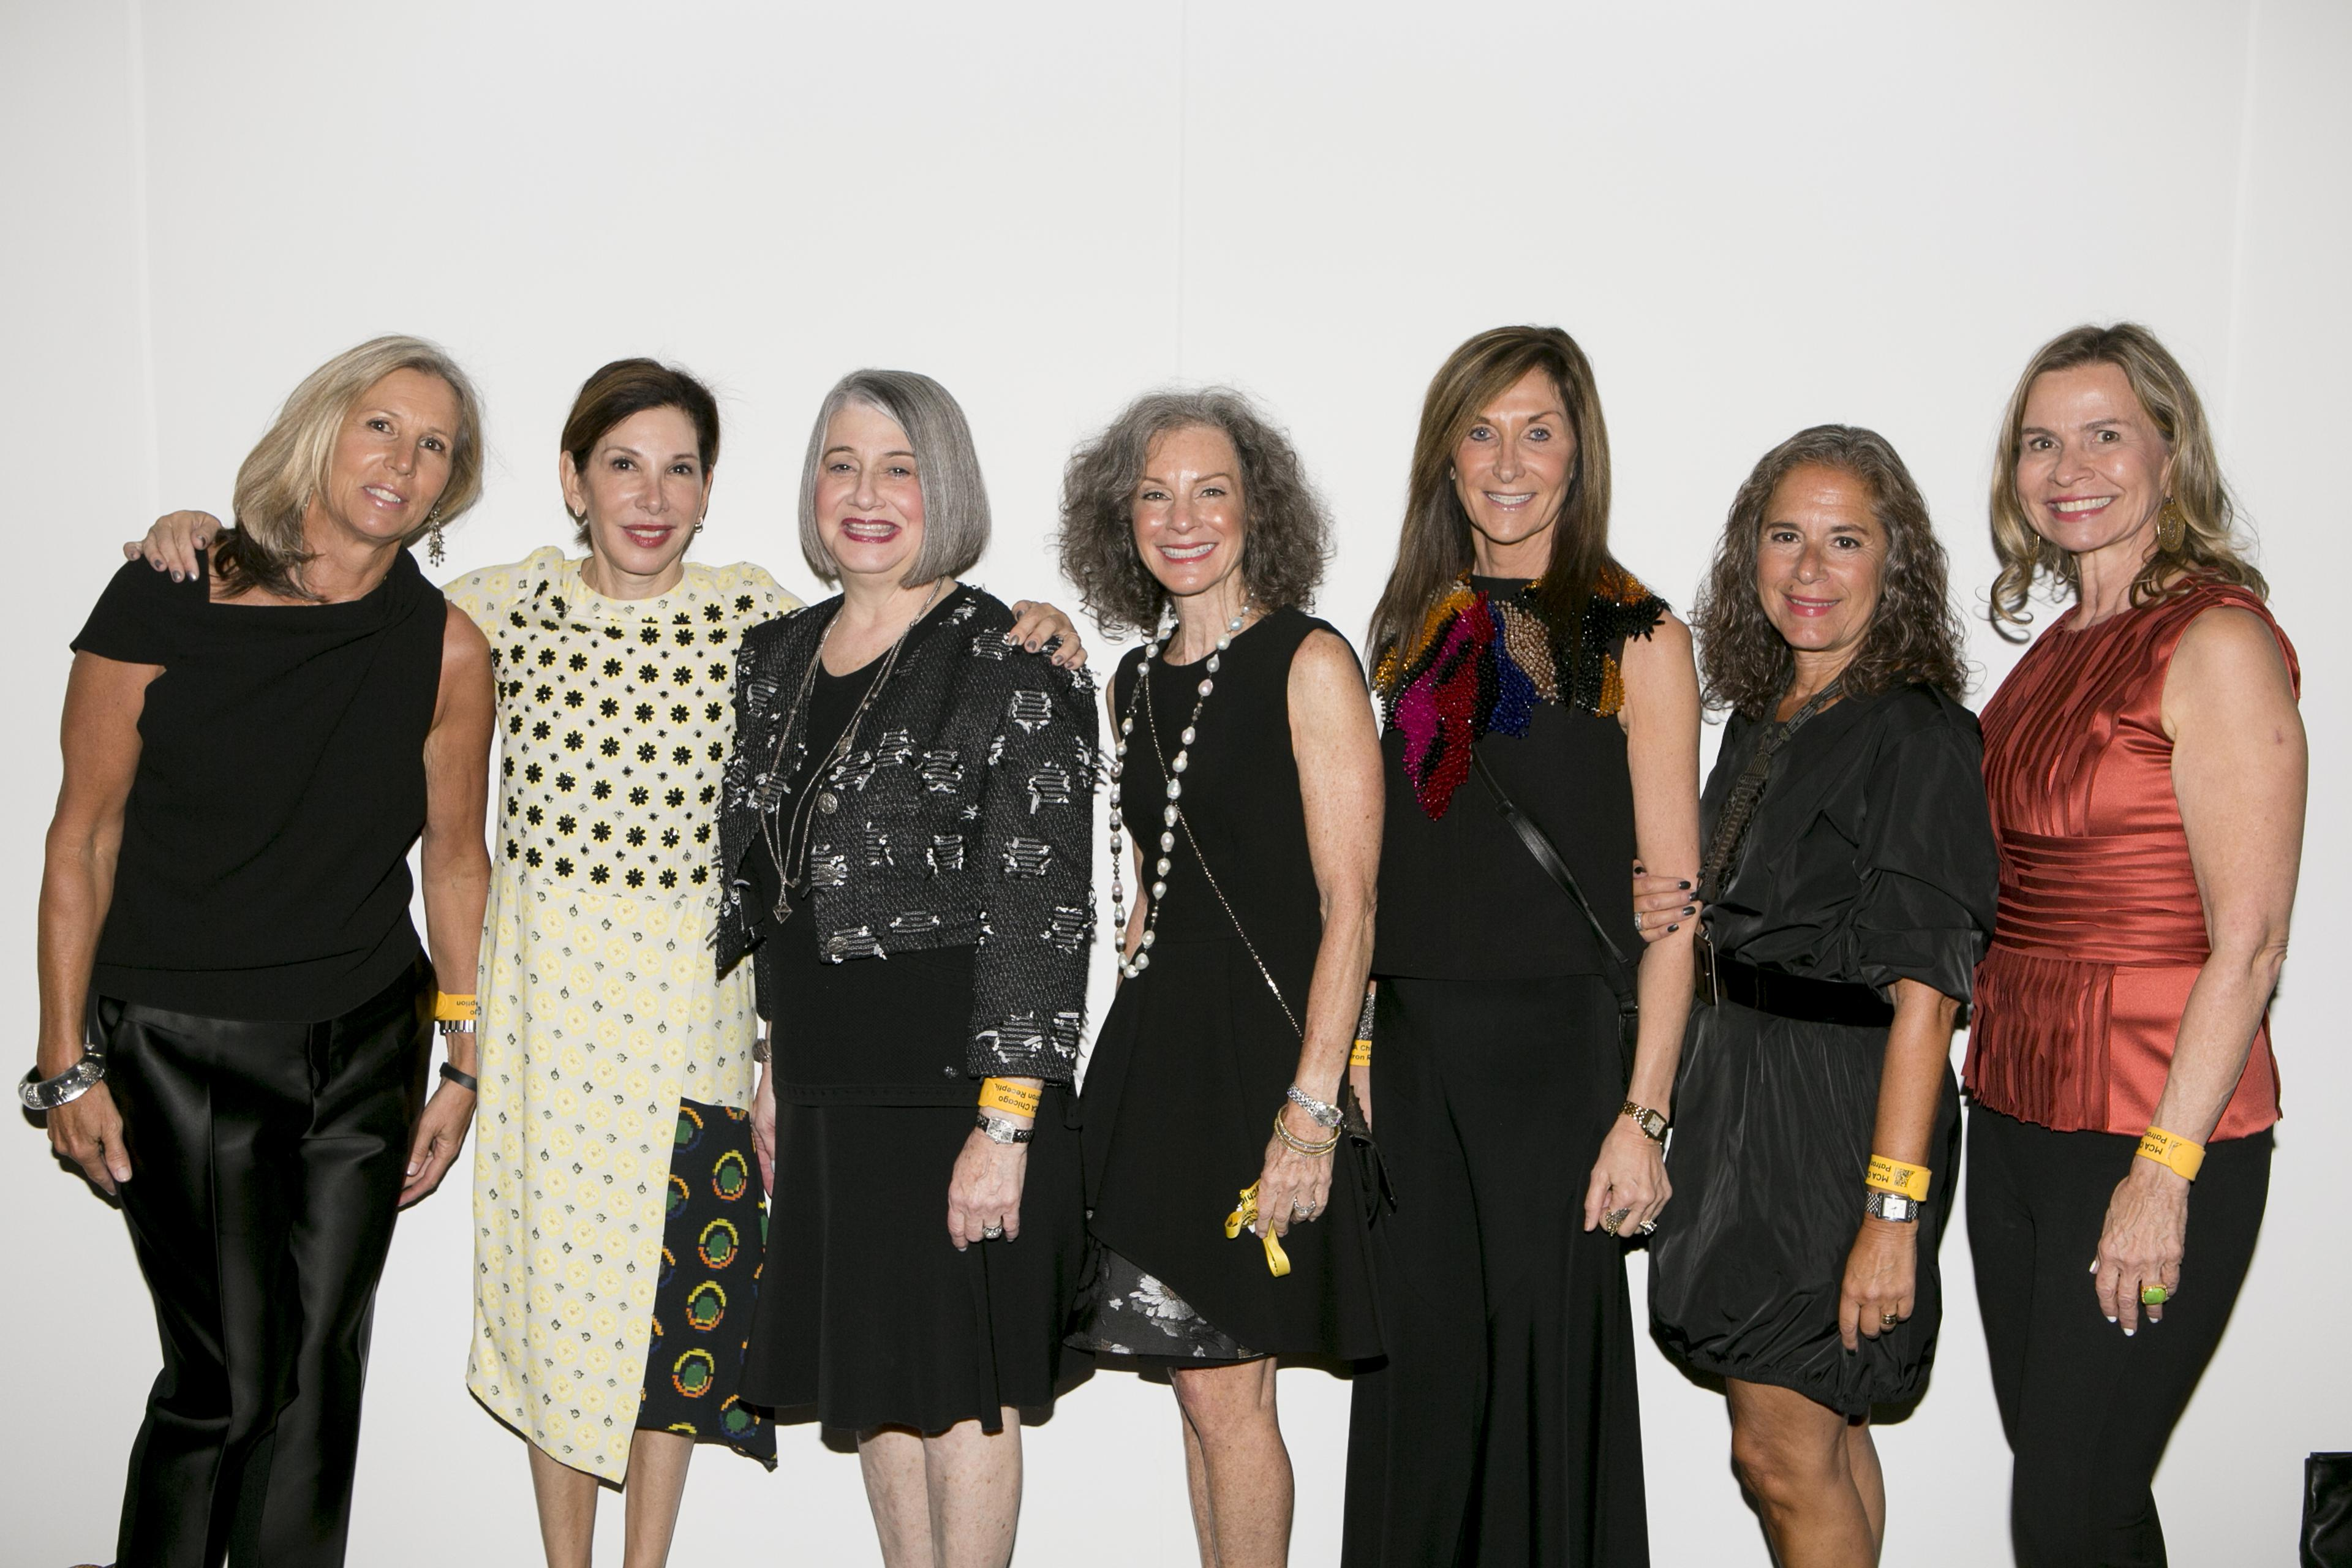 Seven women in cocktail attire pose in front of a white wall.